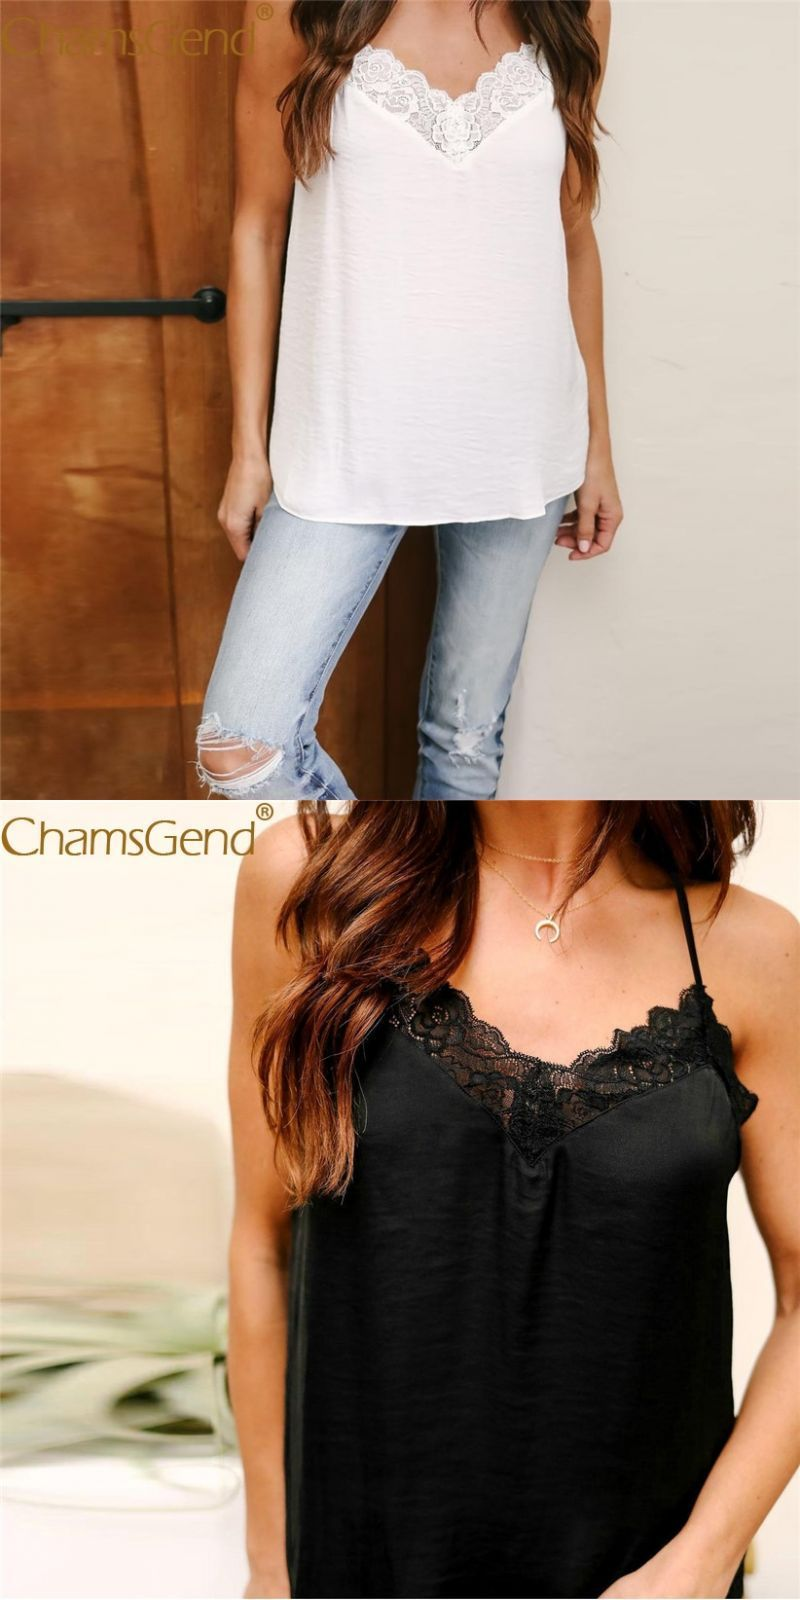 e4a9af1c09d795 Newly design women sexy lace camis chiffon strap blouse vest tops black  white 80313  polyester